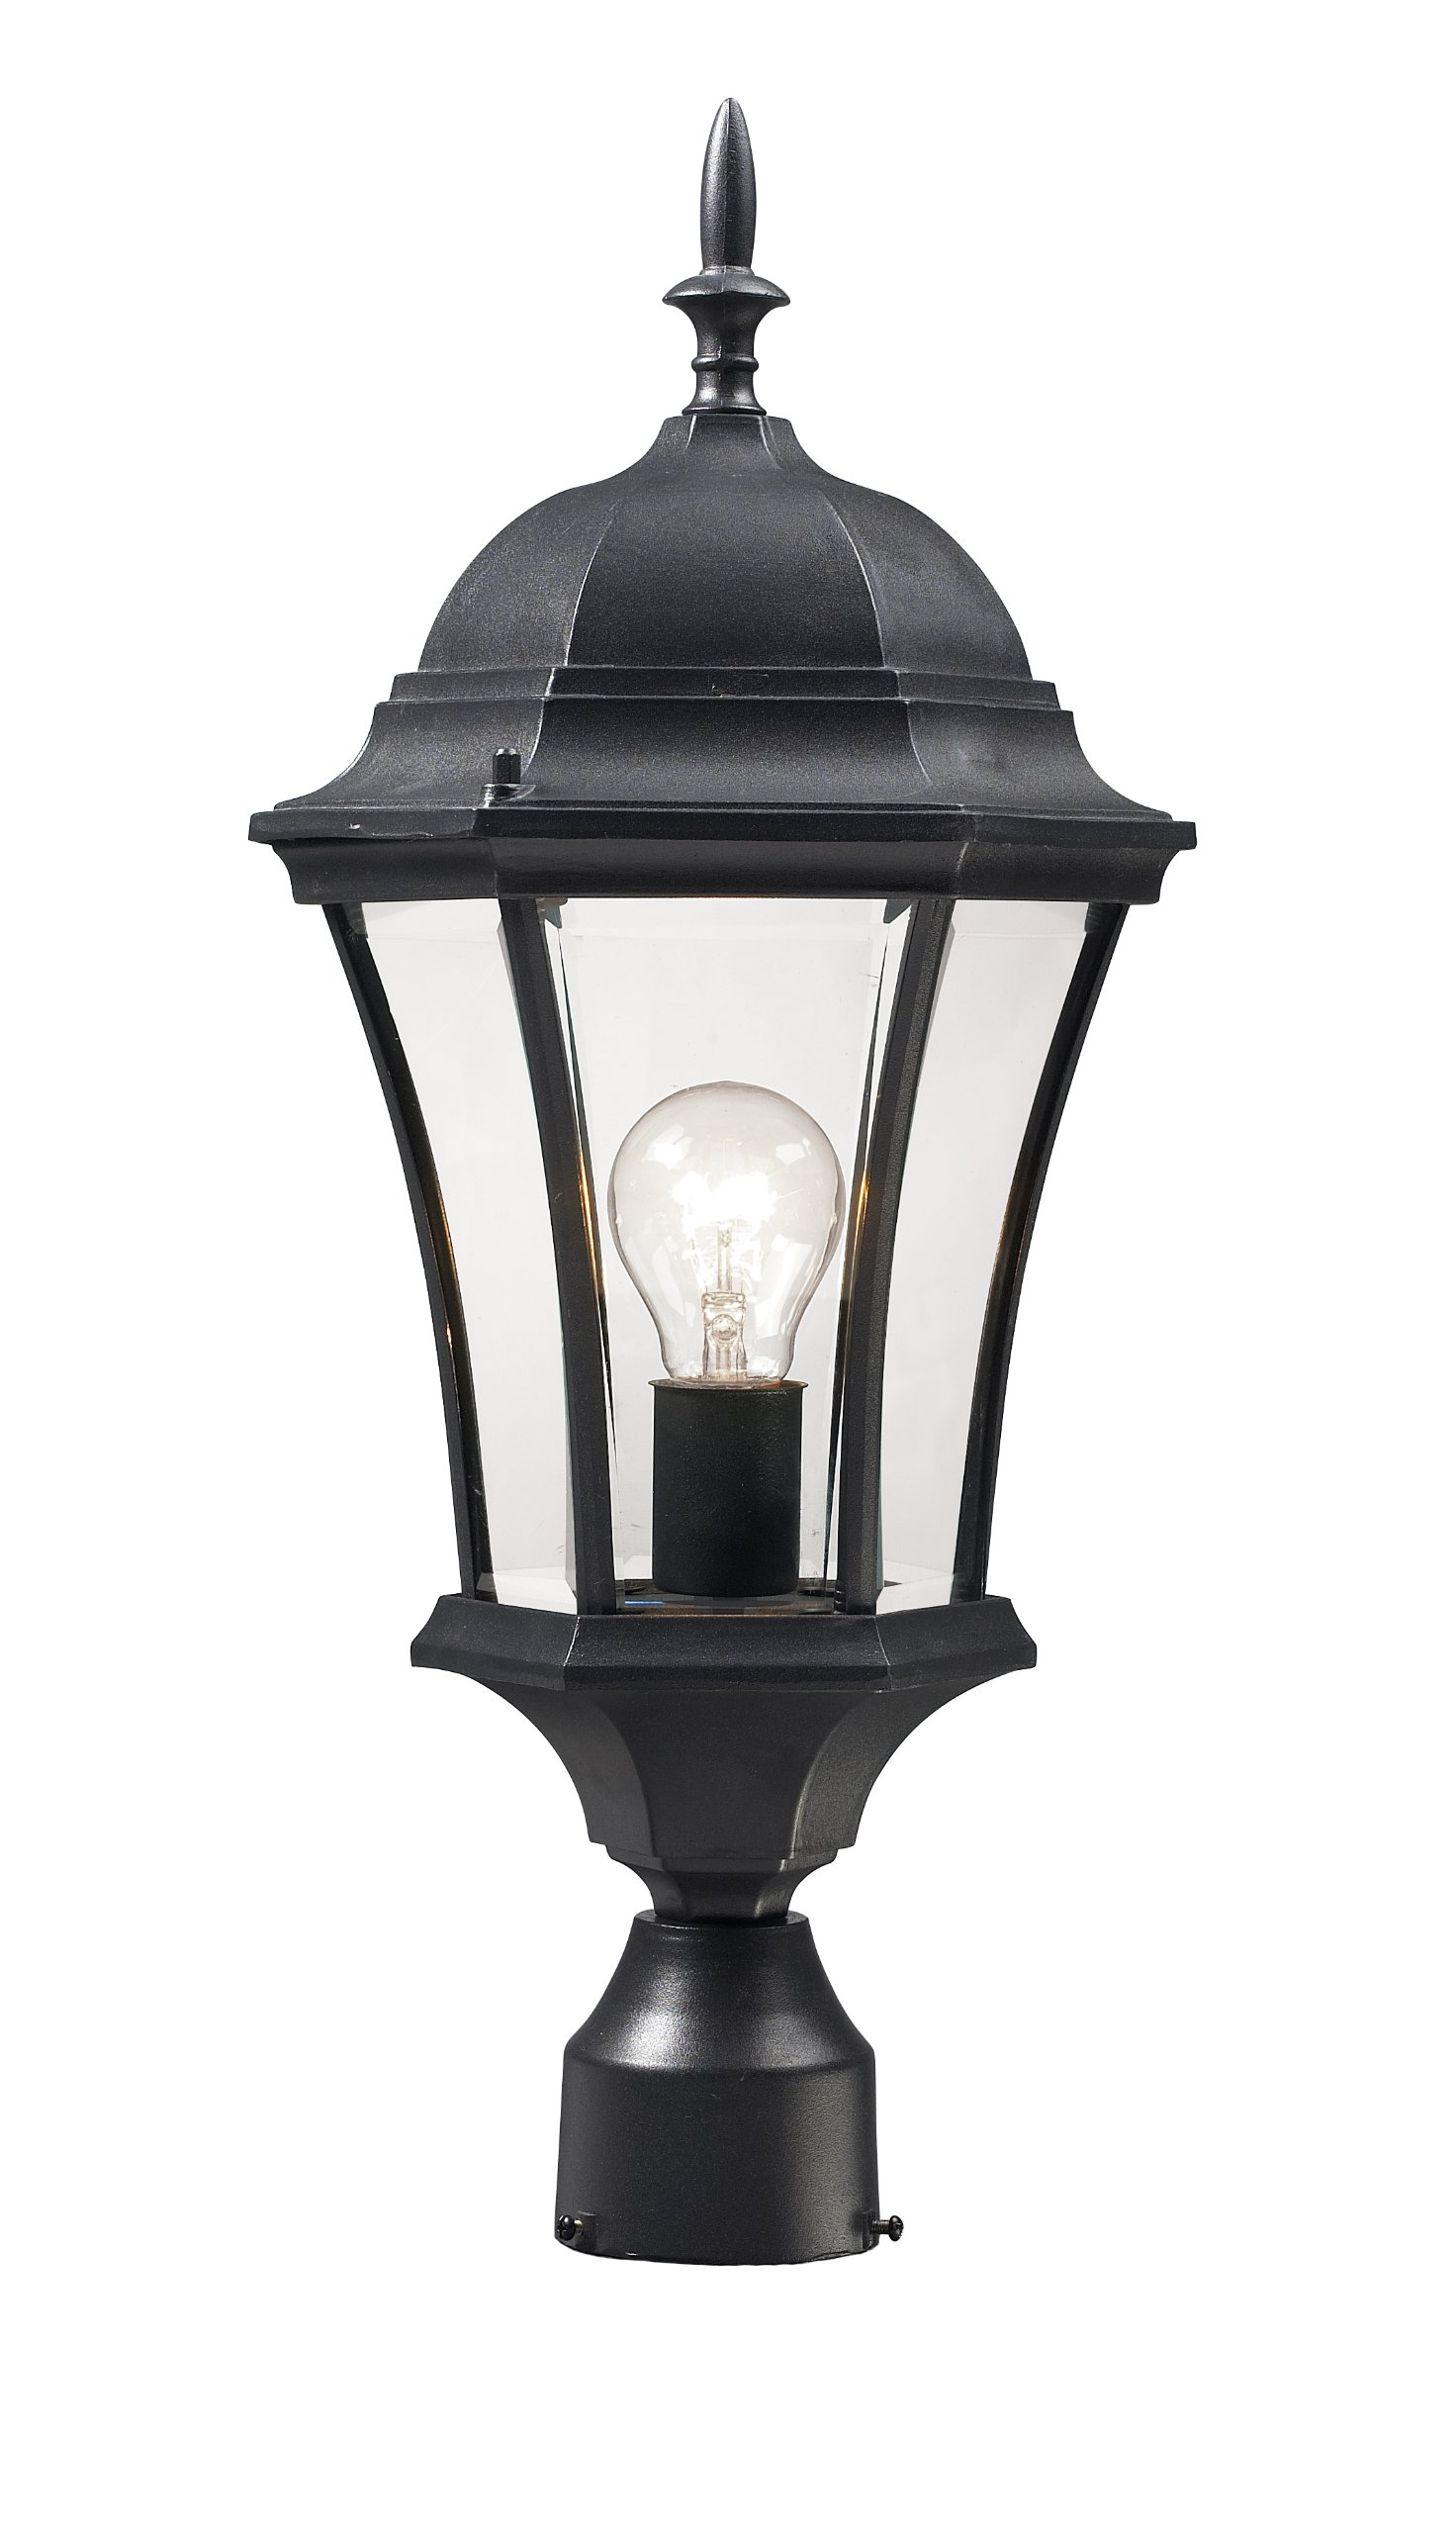 Z-Lite 522PHM-BK Wakefield Outdoor Post Light with Aluminum Frame, Black Finish and Clear Beveled Shade of Glass Material